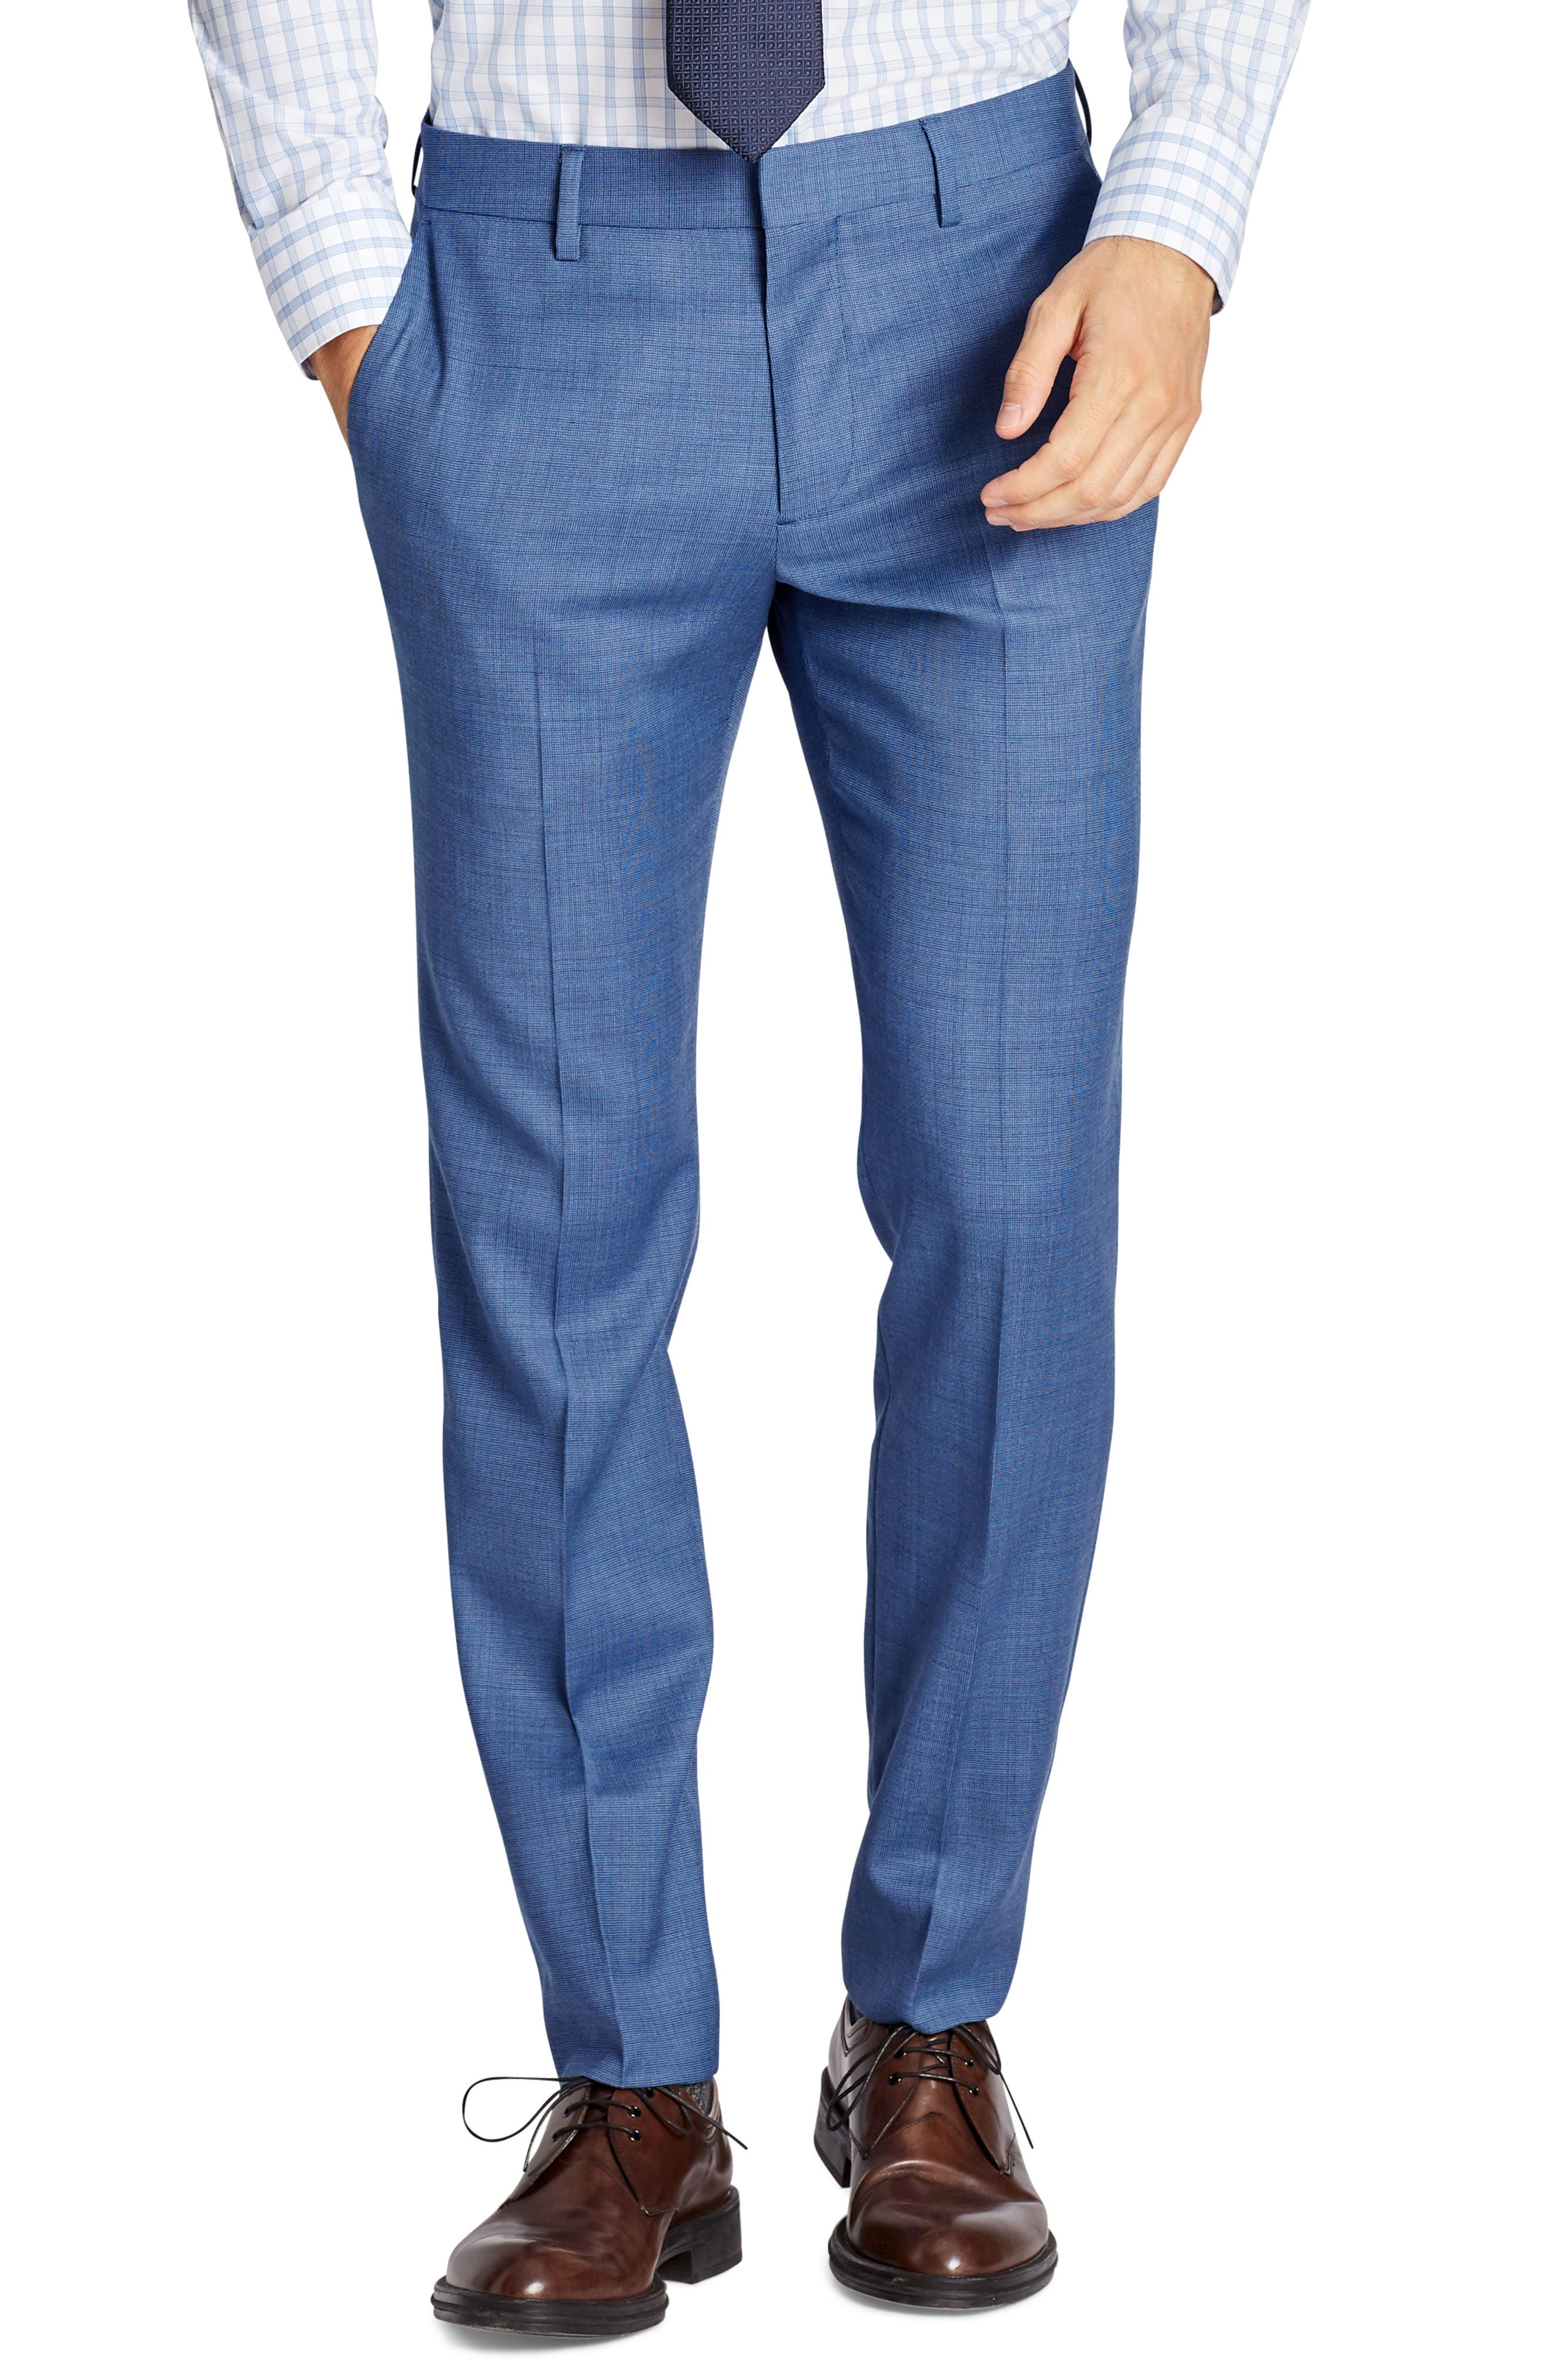 Jetsetter Flat Front Solid Stretch Wool Trousers,                         Main,                         color, Brighter Blue